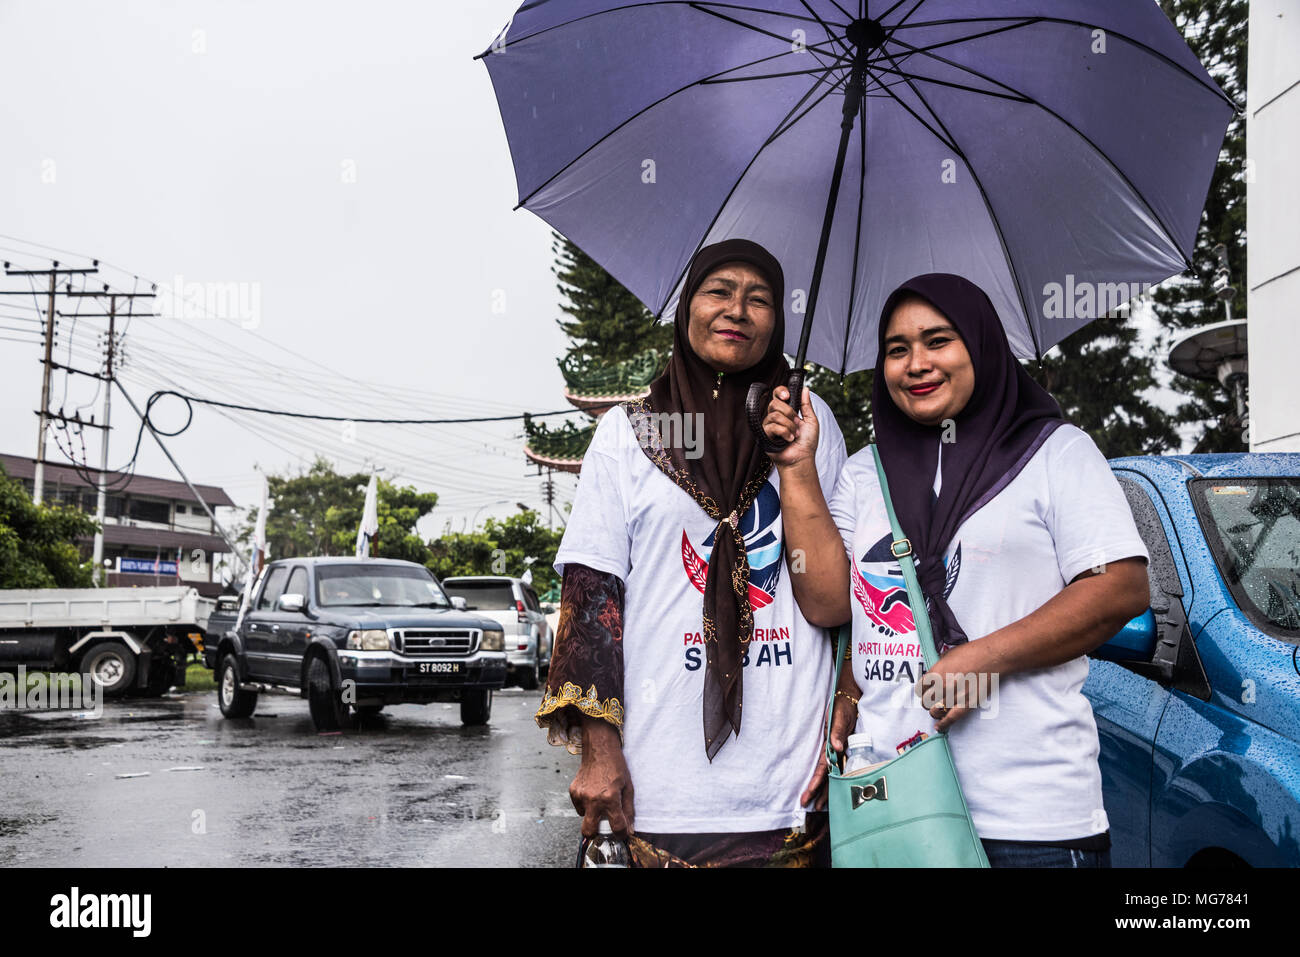 Sabah, Malaysia, 28 April 2018. Nomination Day is a washout in Semporna, but the rain doesn't stop supporters - there is no election apathy here. Semporna, Sabah, Malaysia, 28 April 2018 Credit: Elizabeth Fitt/Alamy Live News - Stock Image